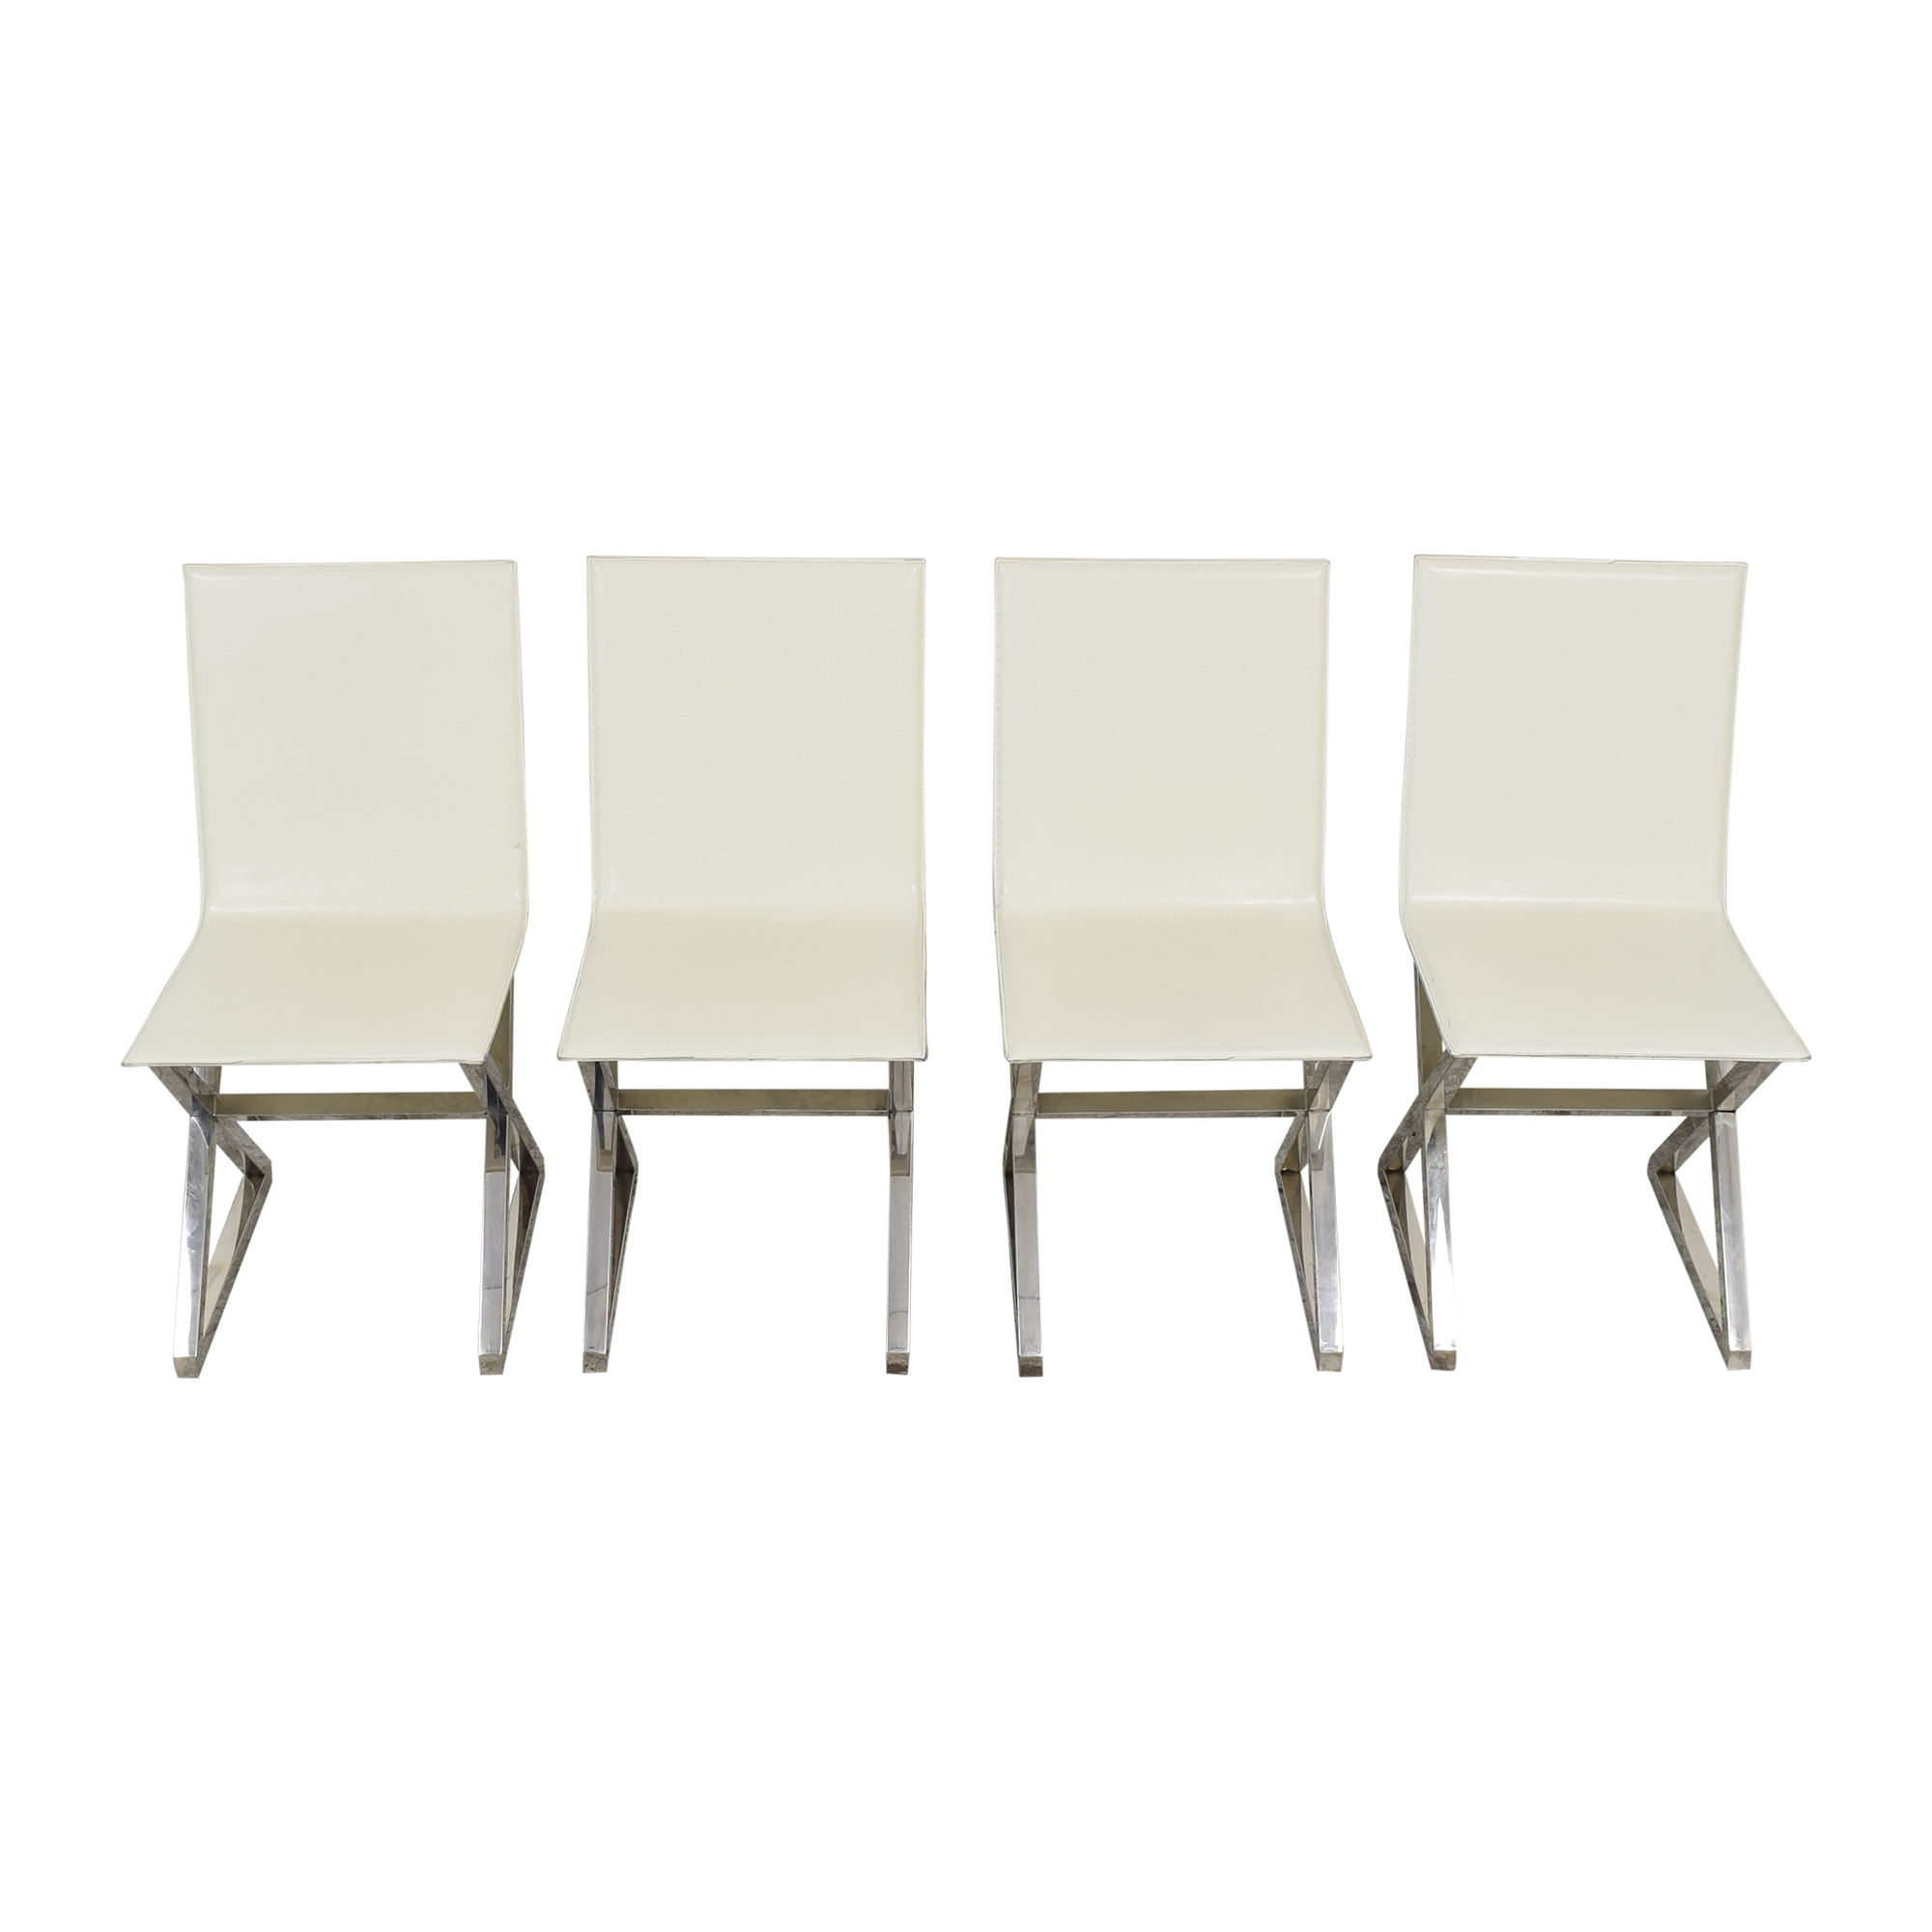 Z Gallerie Z Gallerie Axis Dining Chairs pa